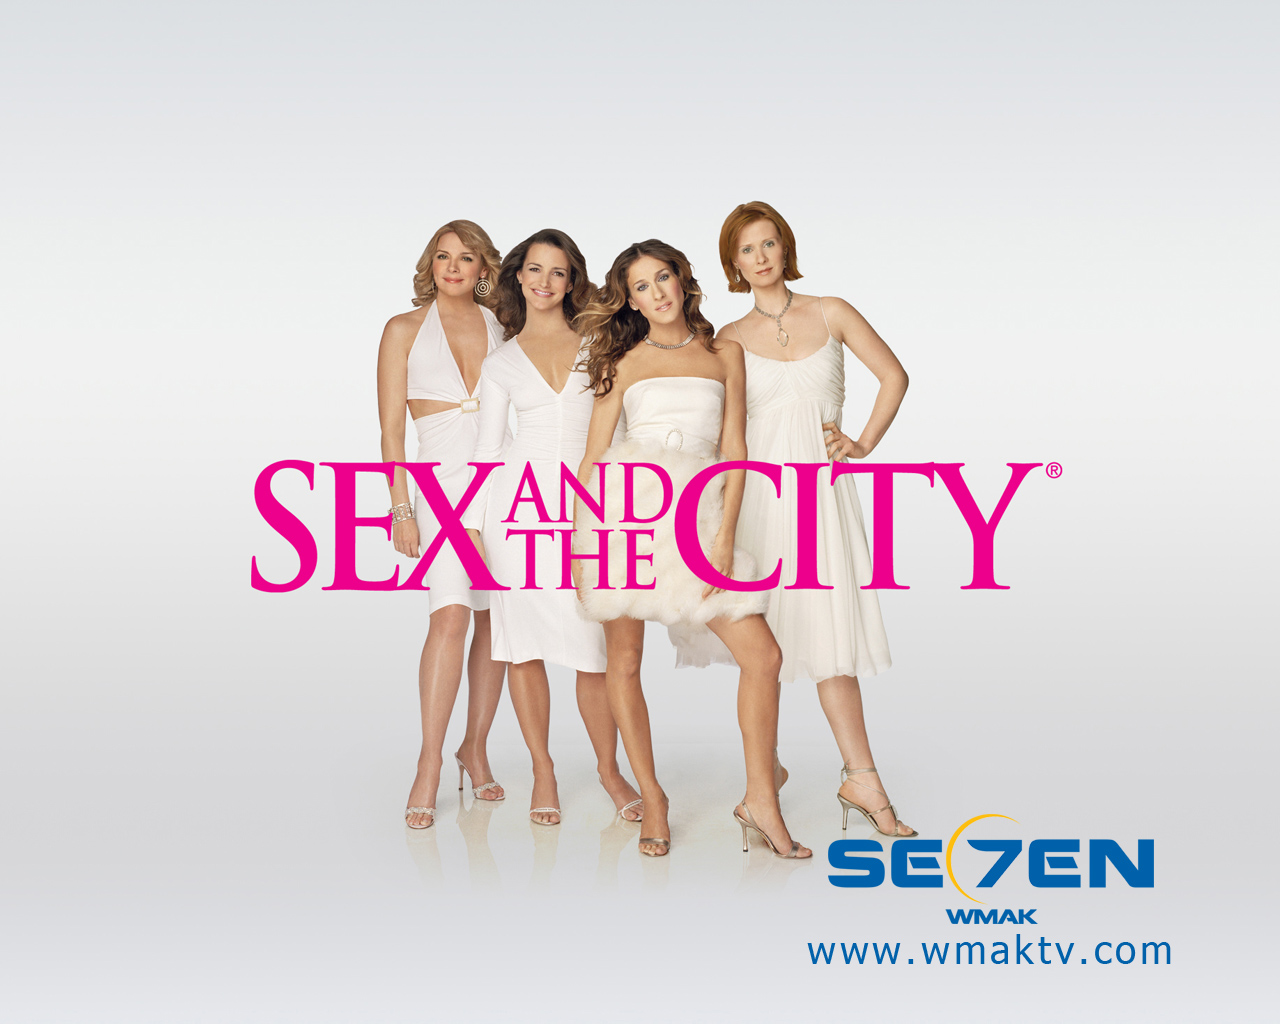 Sex and the city online free download